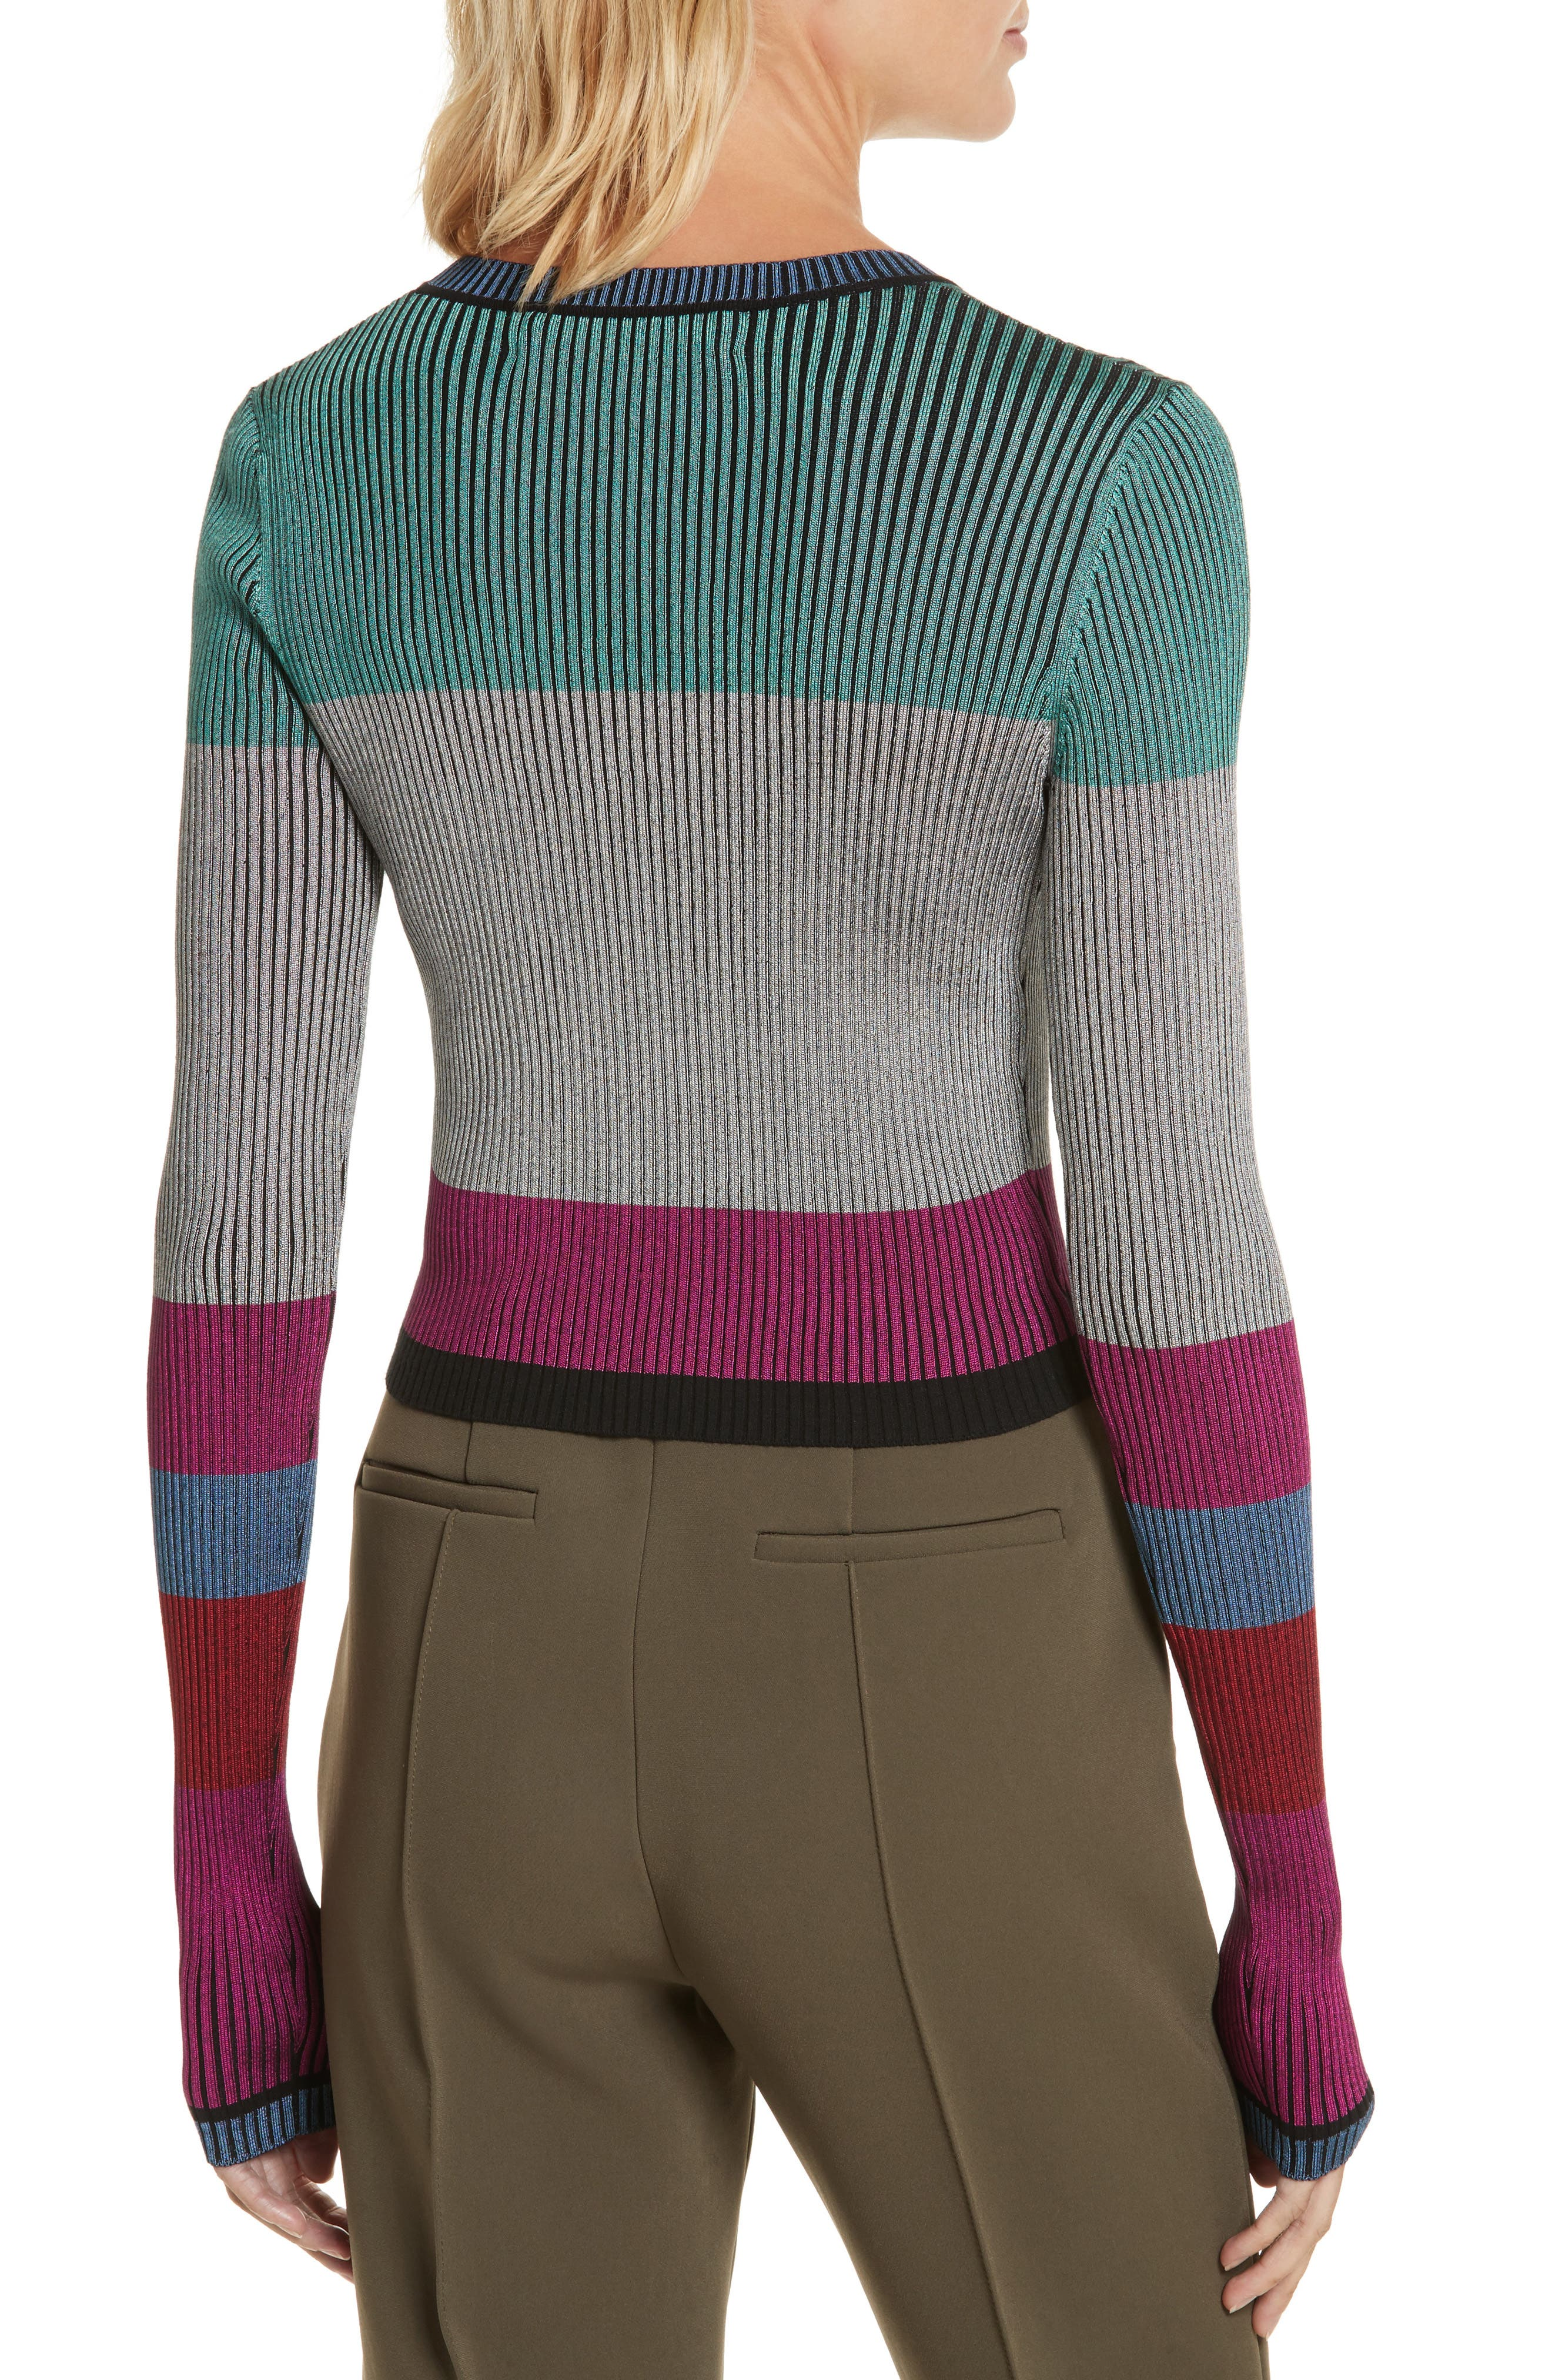 Diane von Furstenberg Cropped Plaited Pullover,                             Alternate thumbnail 2, color,                             Ribbon Pink Multi